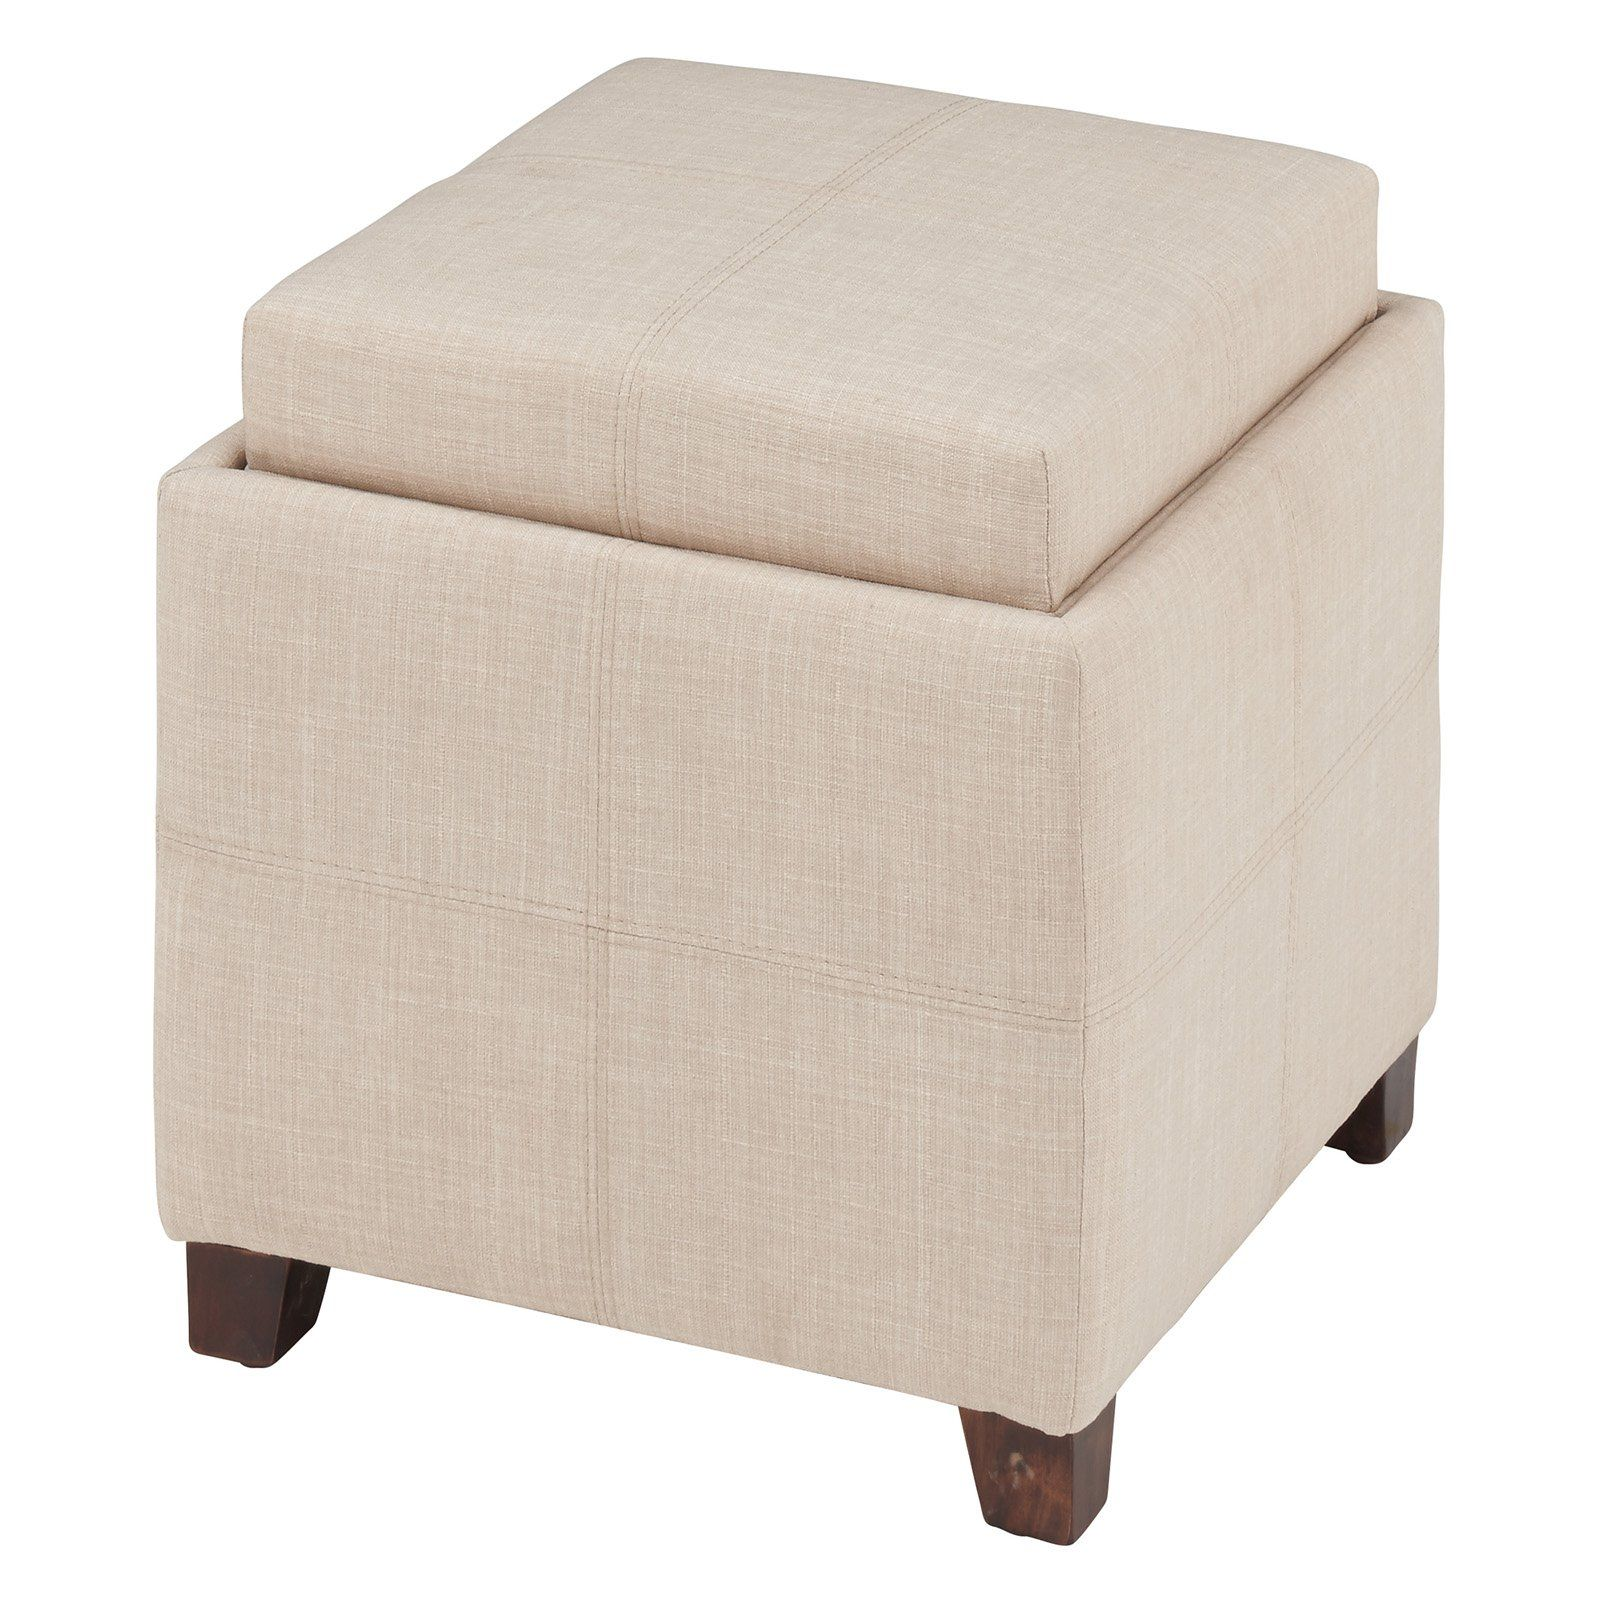 Whi Fabric Storage Cube Ottoman With Reversible Tray Lid 402